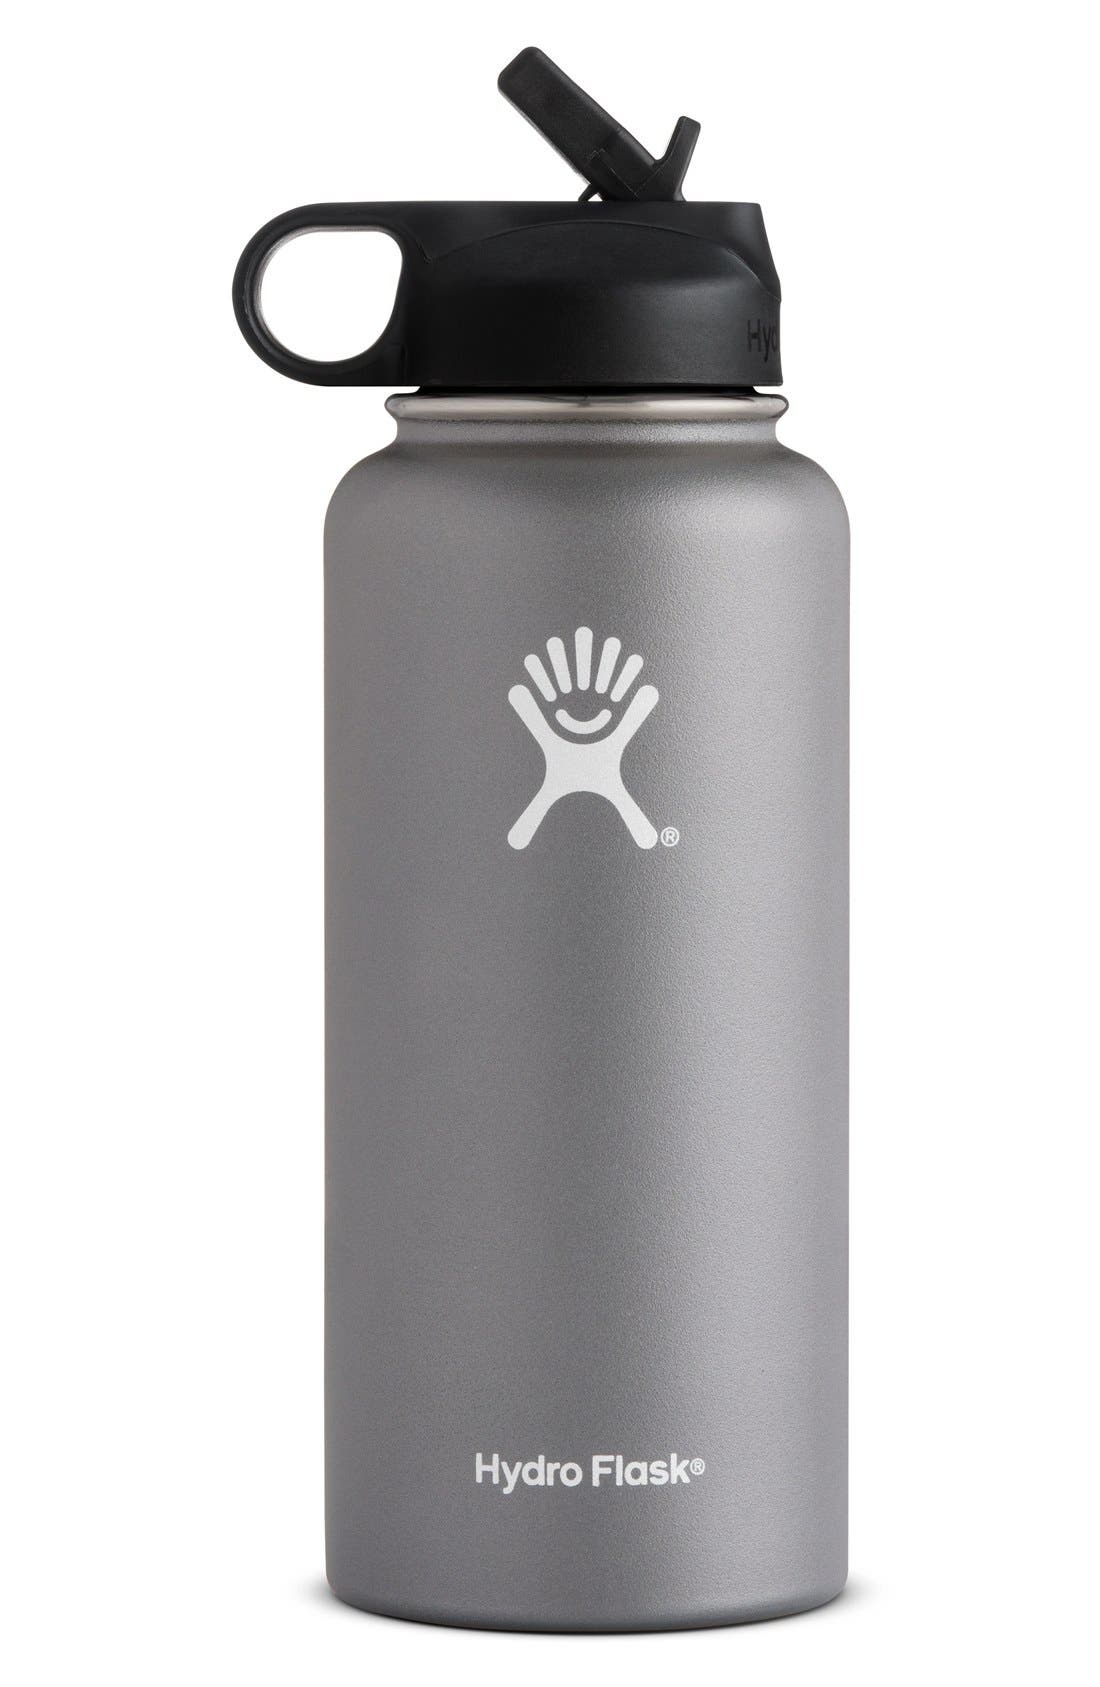 Hydro Flask 32-Ounce Wide Mouth Bottle with Straw Lid